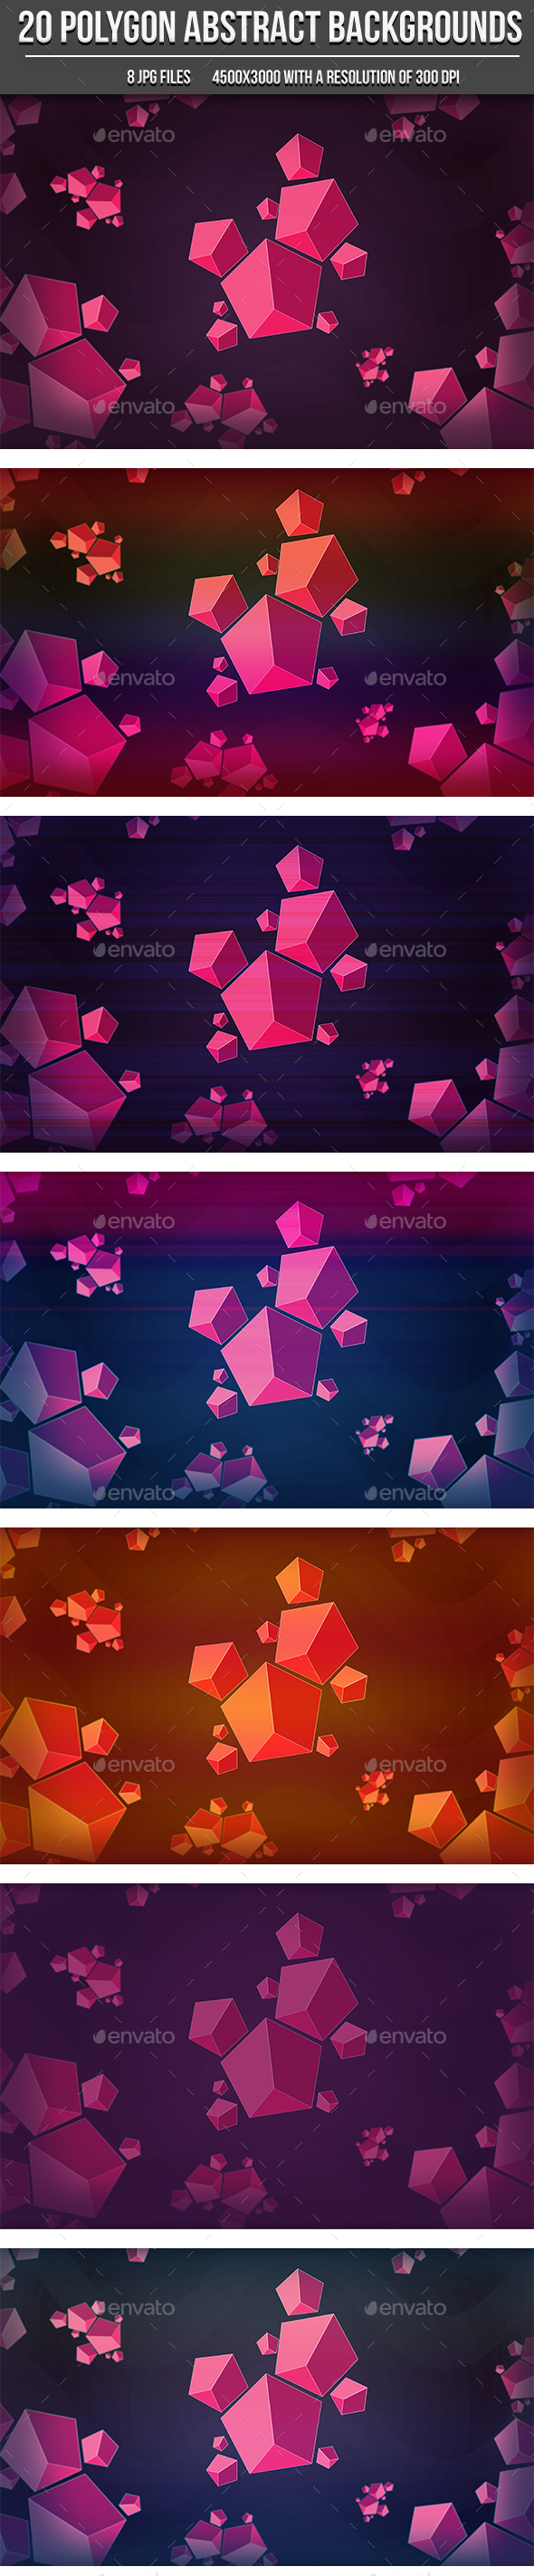 Abstract Polygons Backgrounds - Abstract Backgrounds